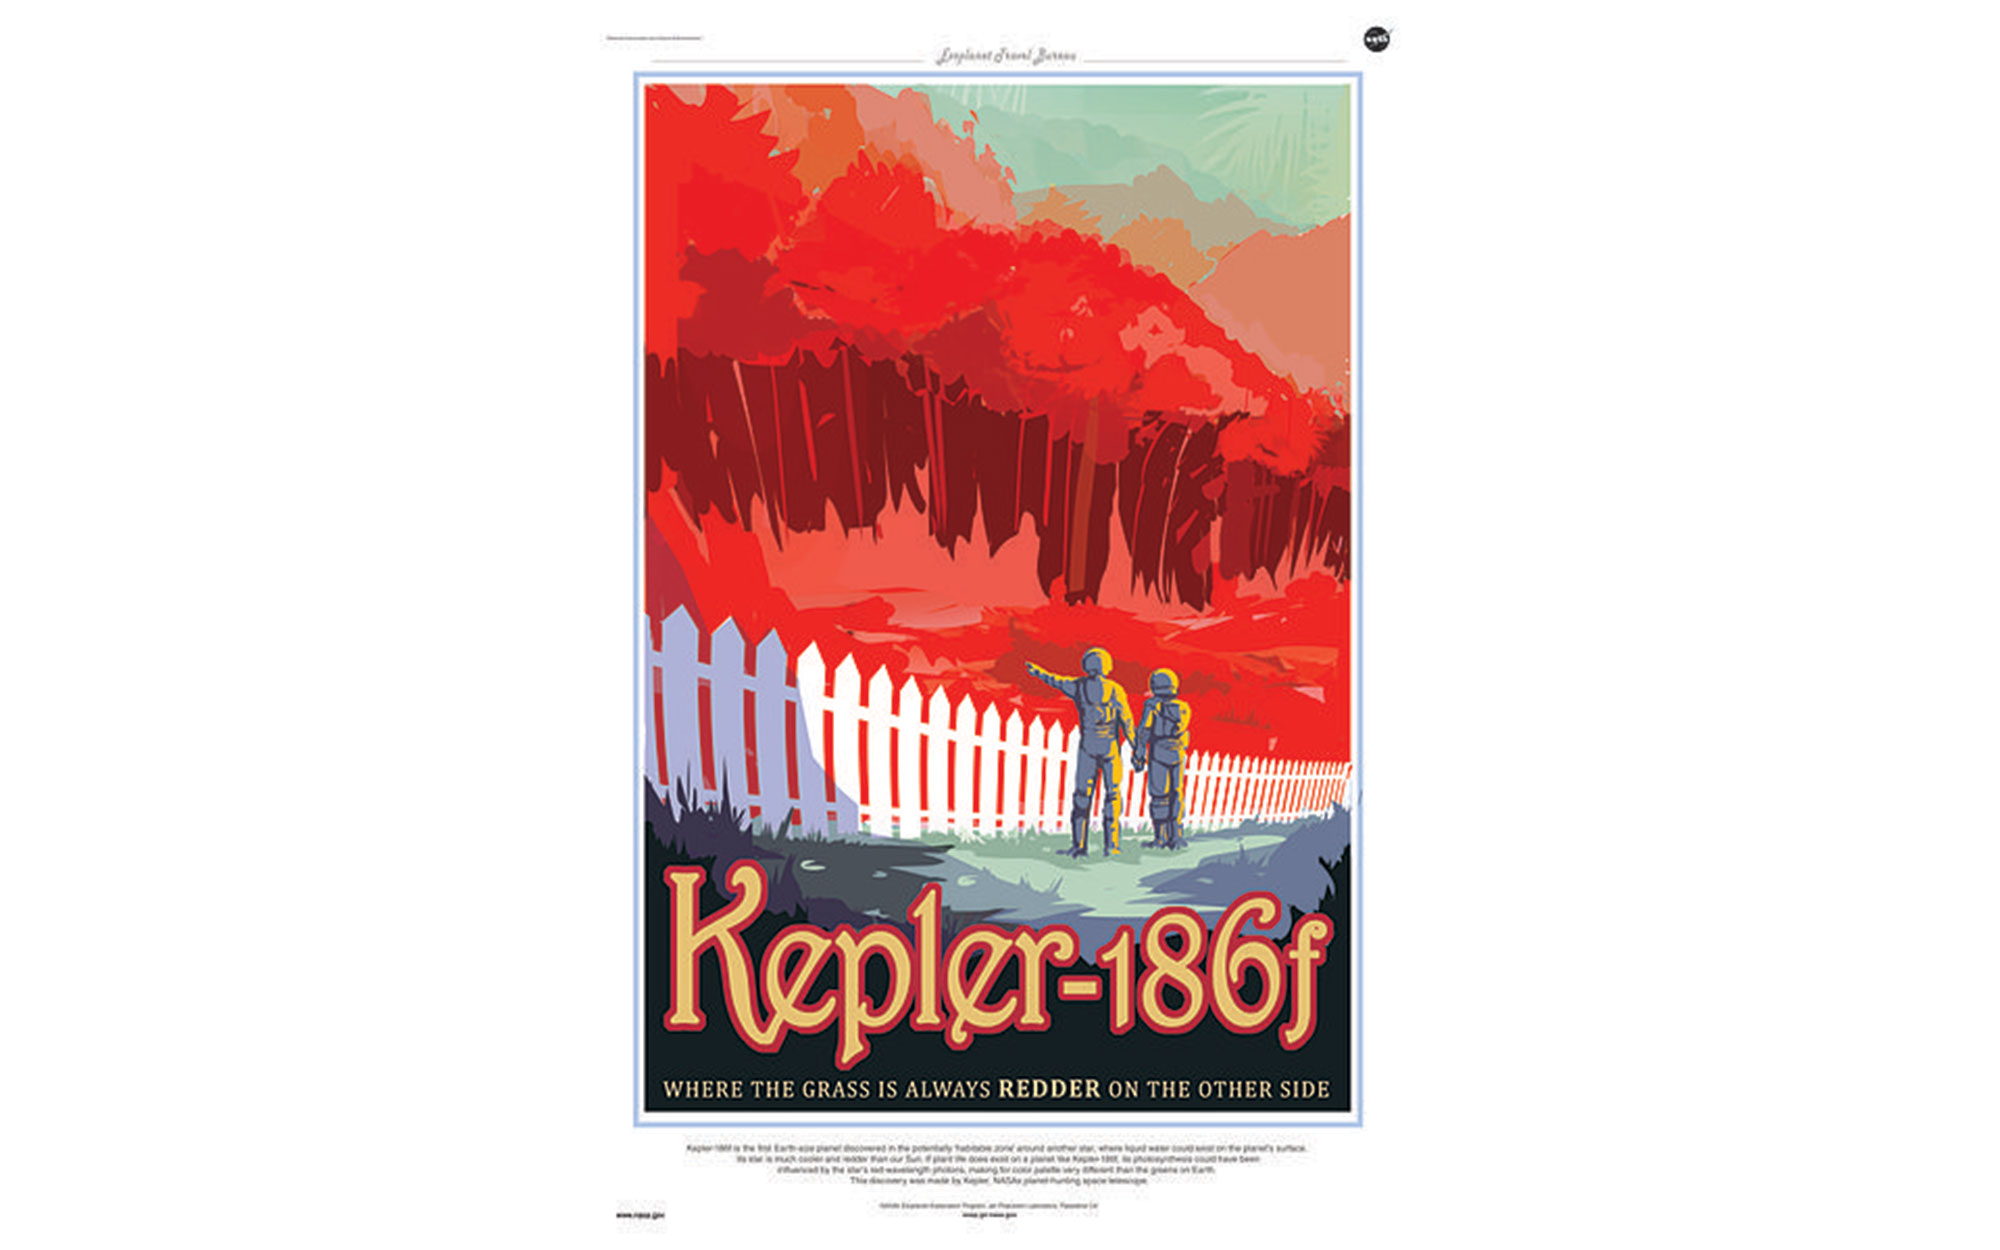 NASA's New Space Travel Posters Are The Vision Of The Future